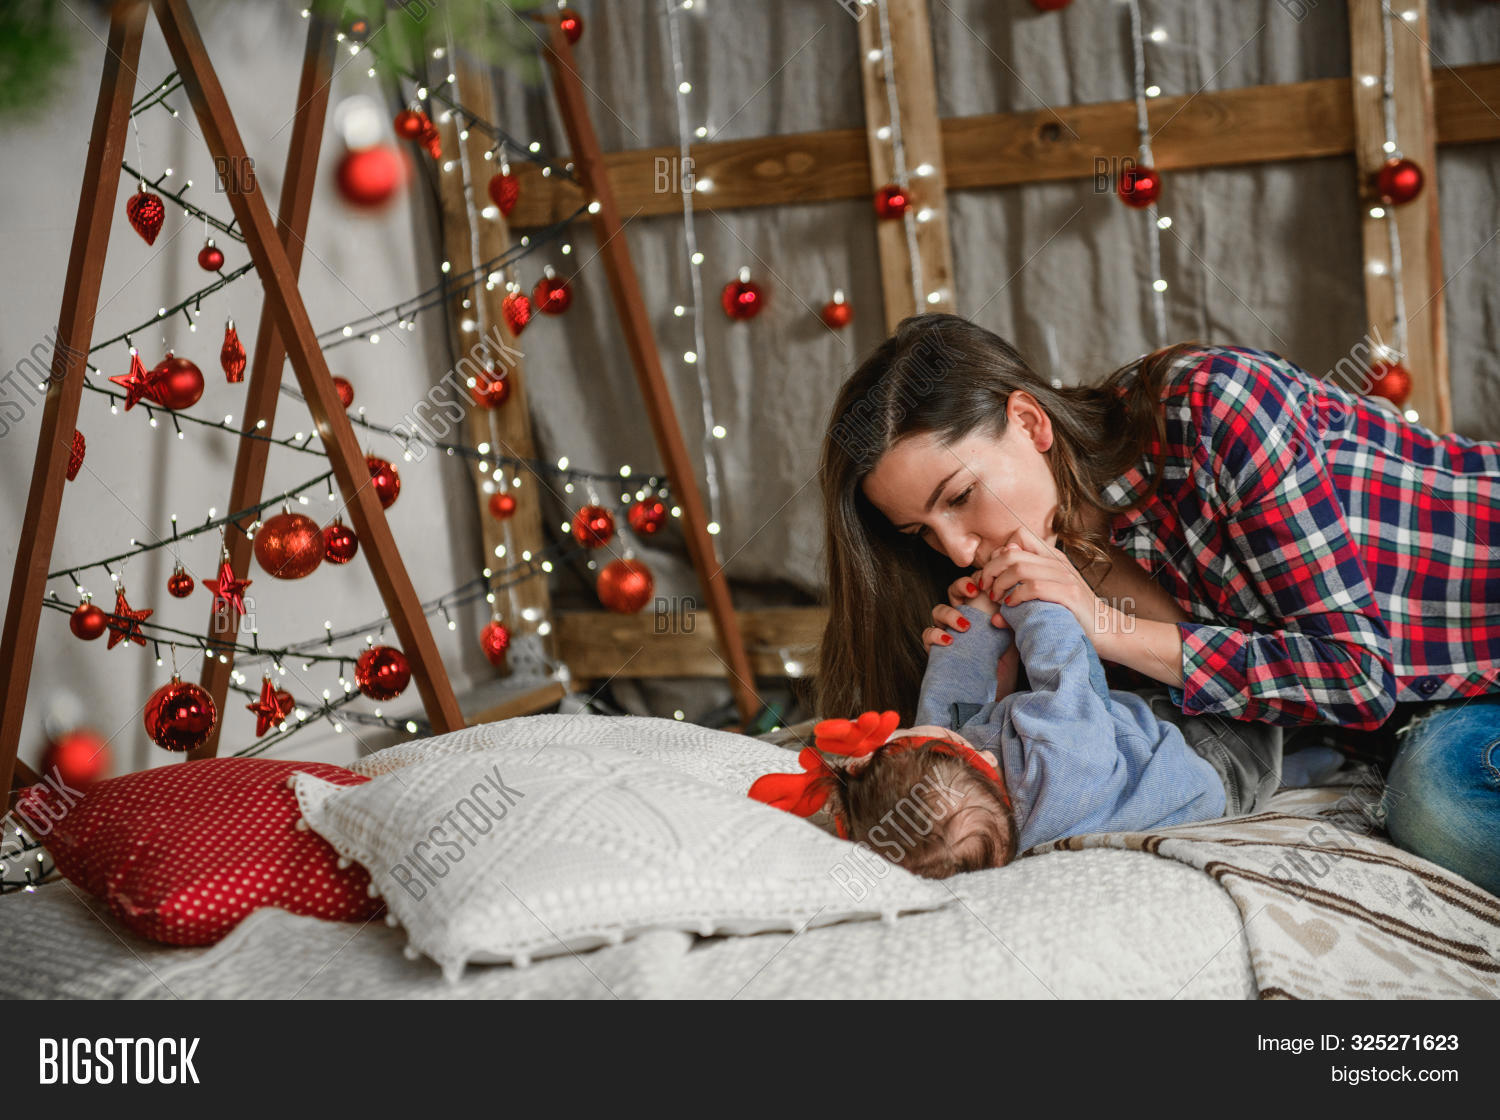 2020,2021,31,adorable,baby,background,ball,beautiful,boy,caucasian,celebration,cheerful,child,christmas,cute,december,decoration,face,first,funny,gift,girl,happy,hat,holiday,infant,innocence,innocent,kid,little,new,newborn,one,person,portrait,present,red,santa,smile,white,xmas,year